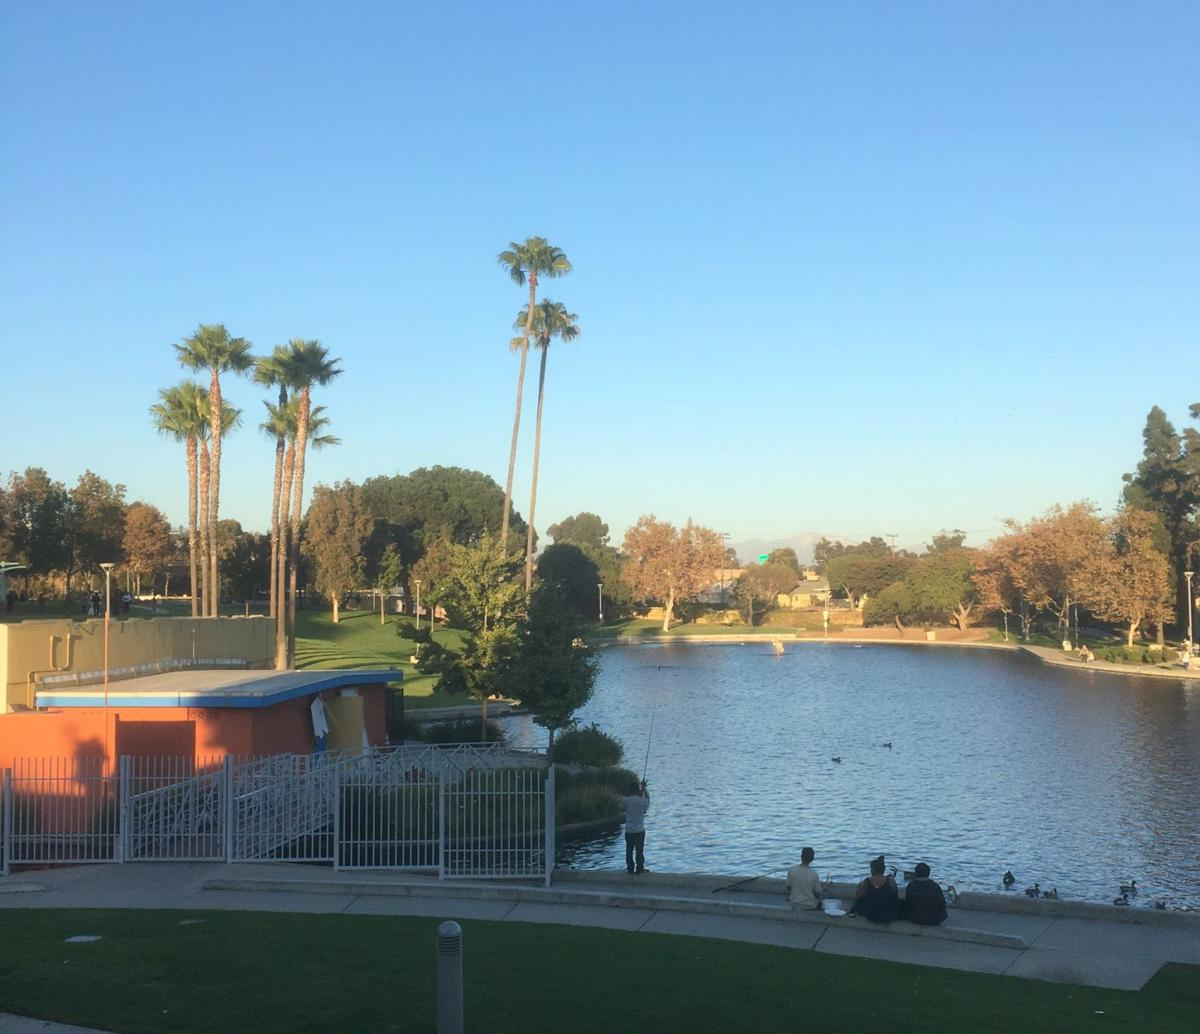 Belvedere Park Lake at the East LA Civic Center